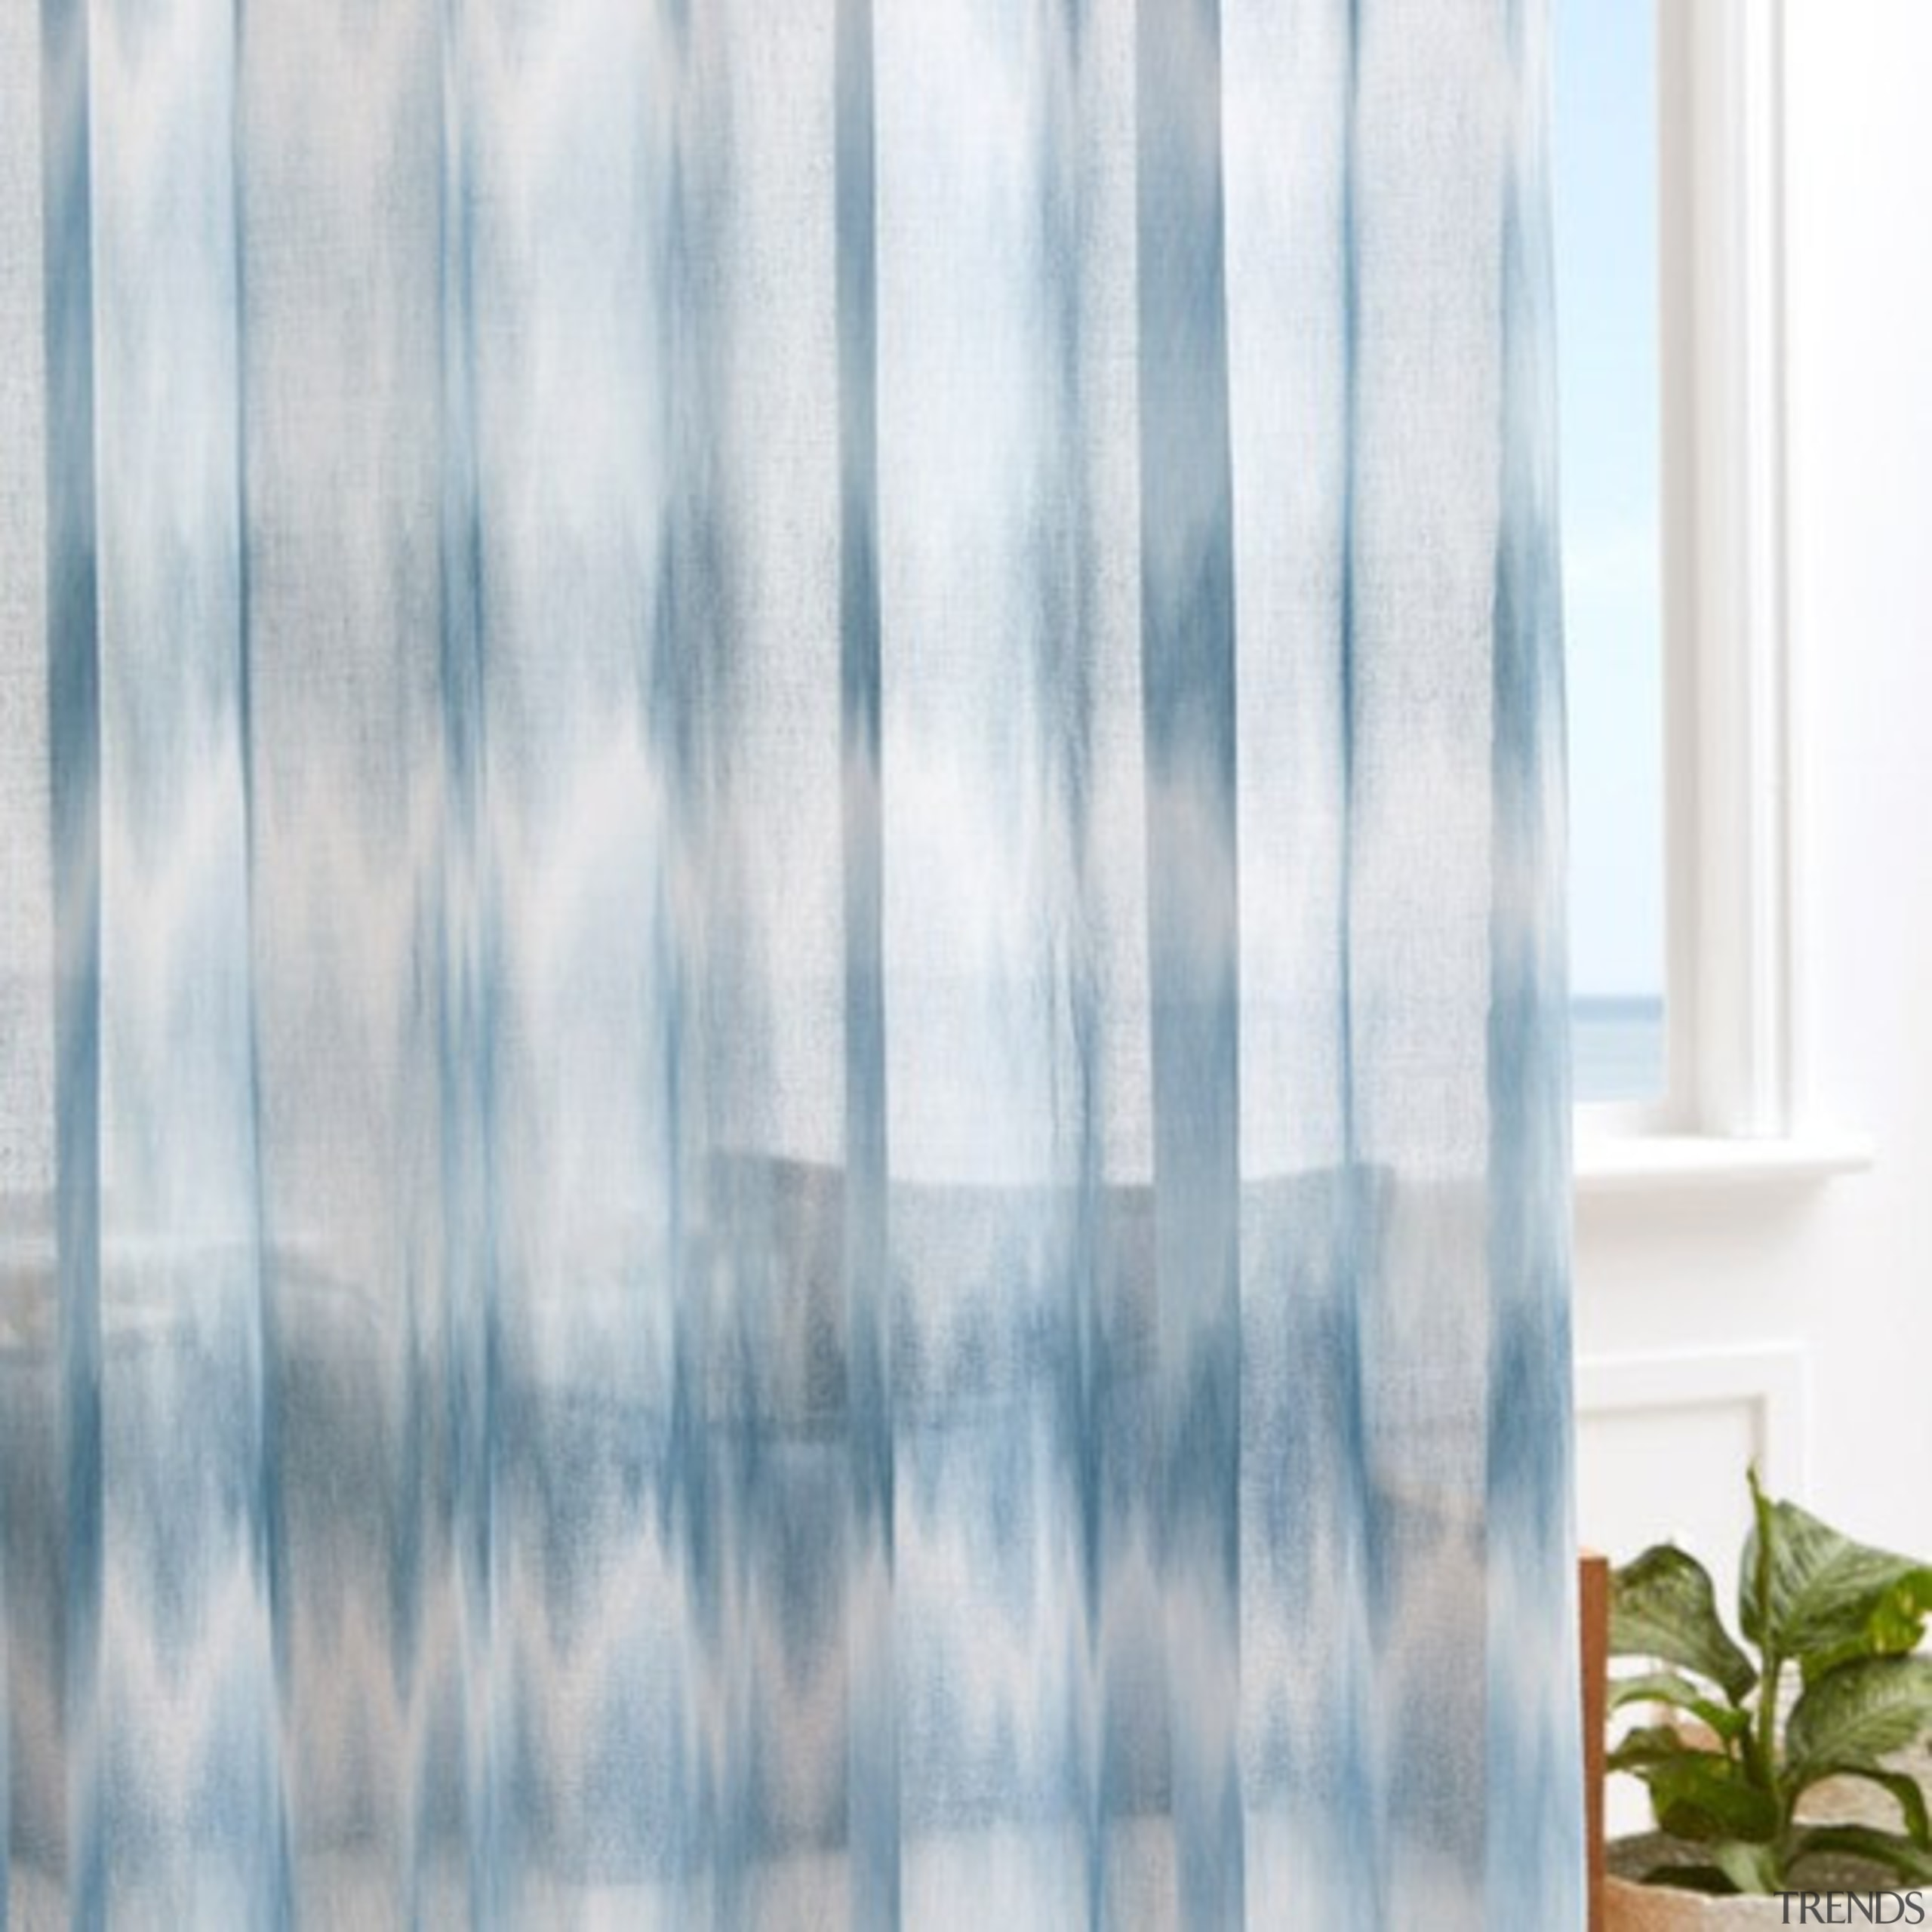 Serene and timeless, COAST combines a stylish ombre blue, curtain, interior design, textile, window, window covering, window treatment, gray, white